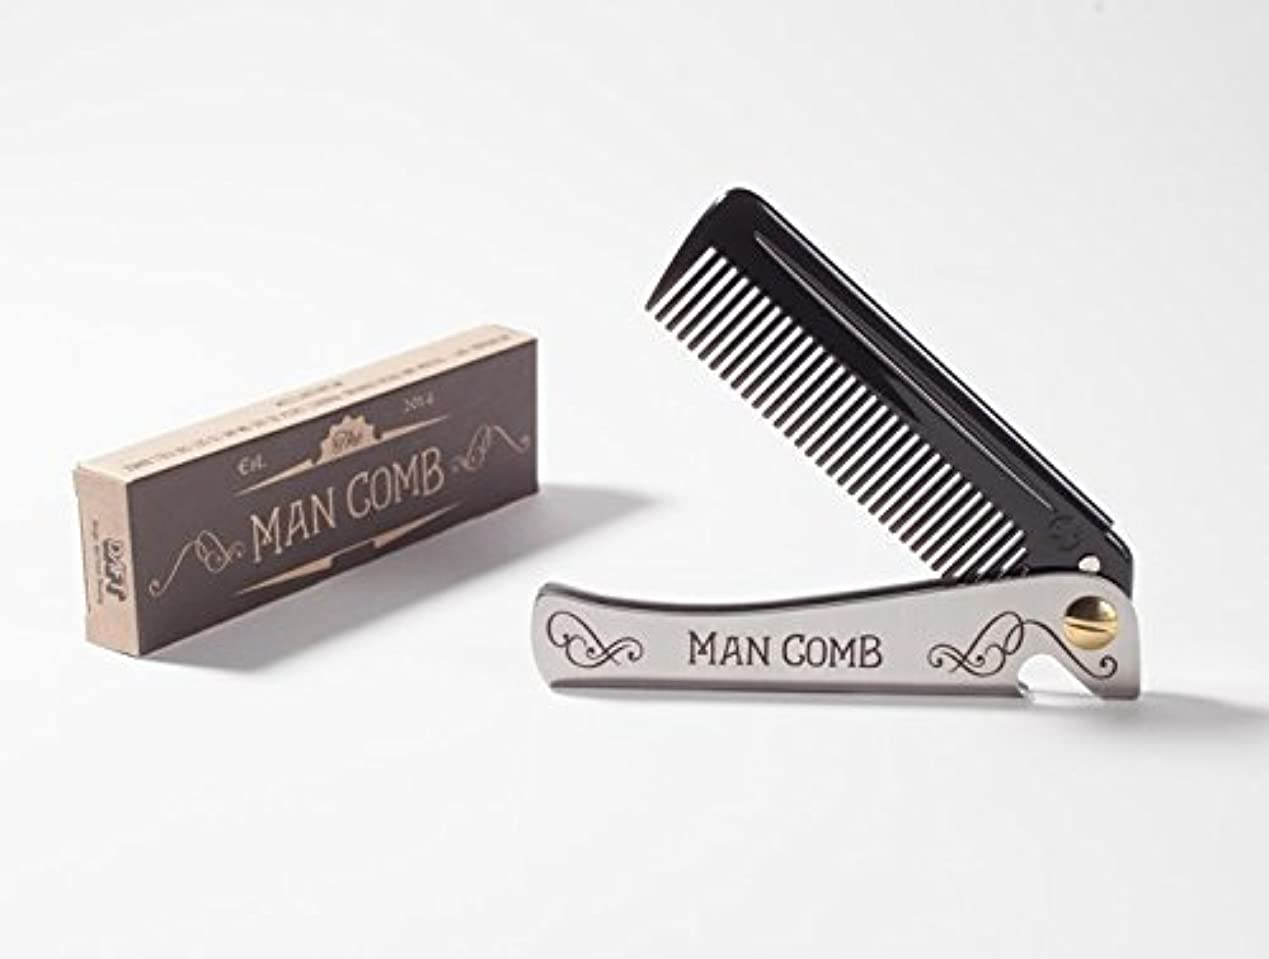 批判的に杭アーネストシャクルトンMan Comb 'Limited Edition'. The Ultimate Tool for your Hair, Beard and Beer. [並行輸入品]